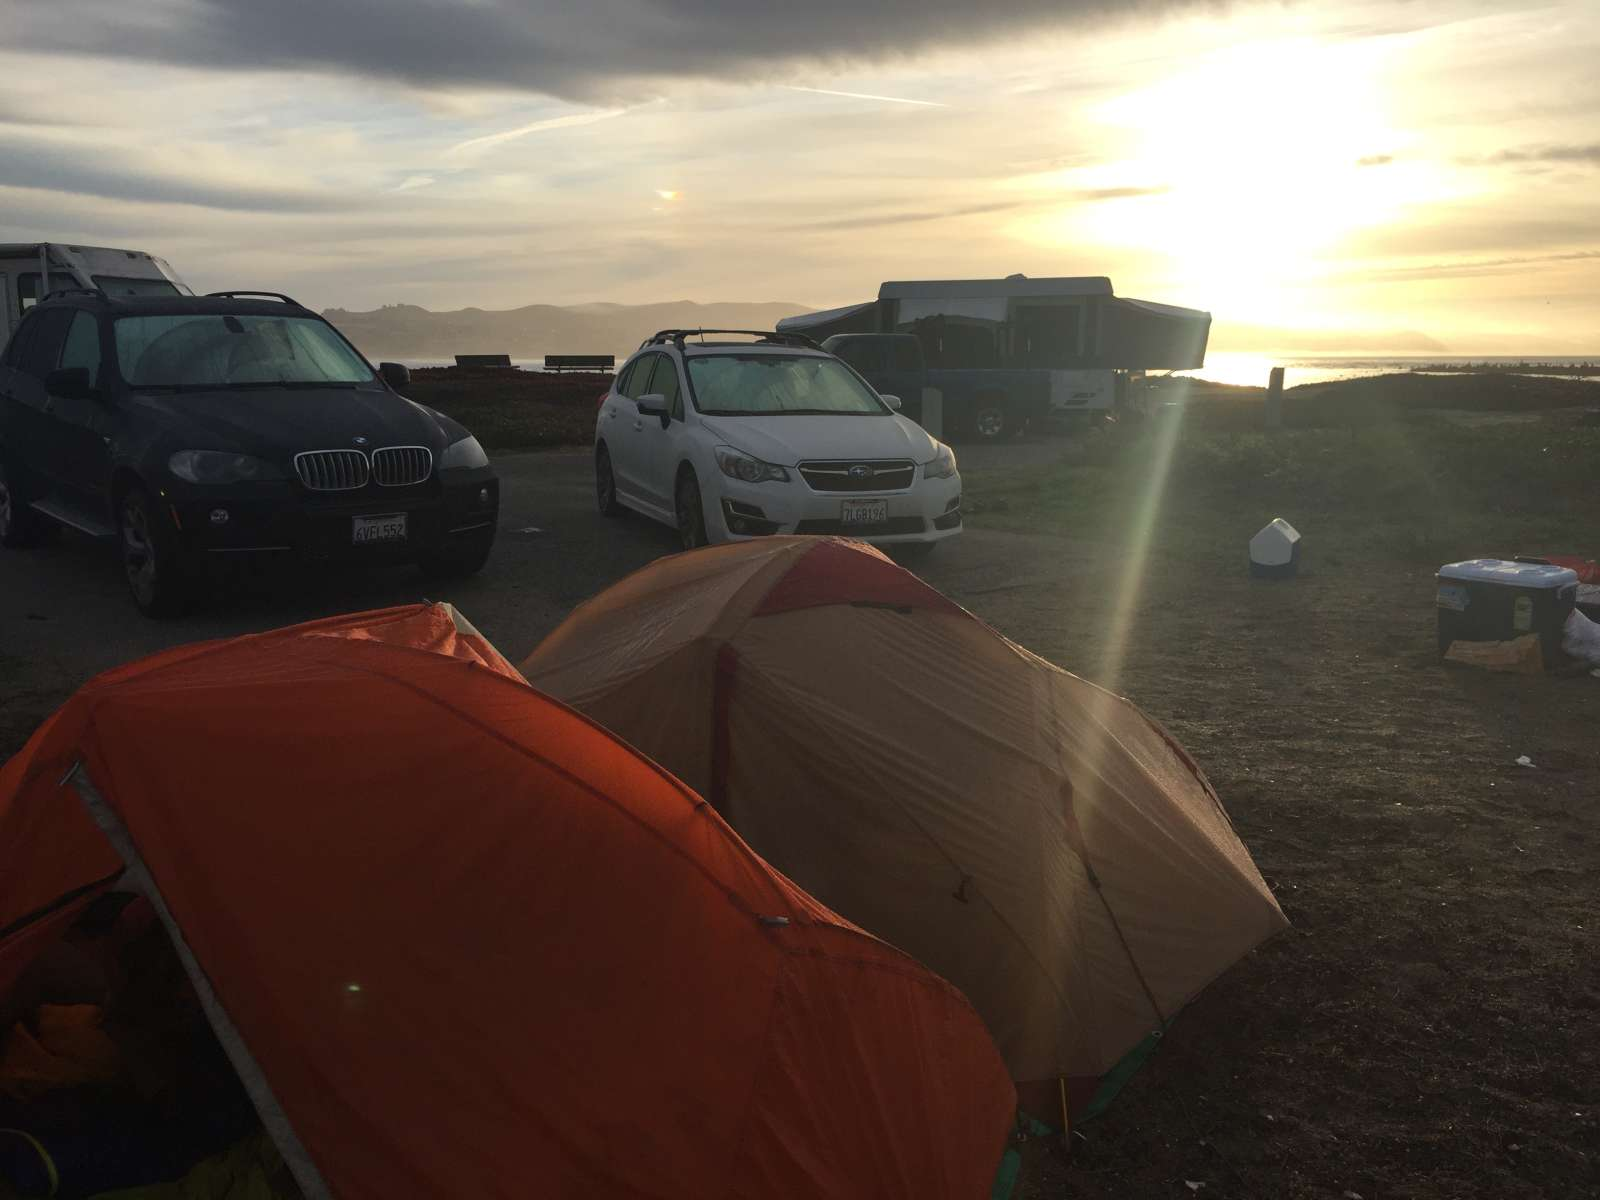 Bodega dunes campground fees with hookups